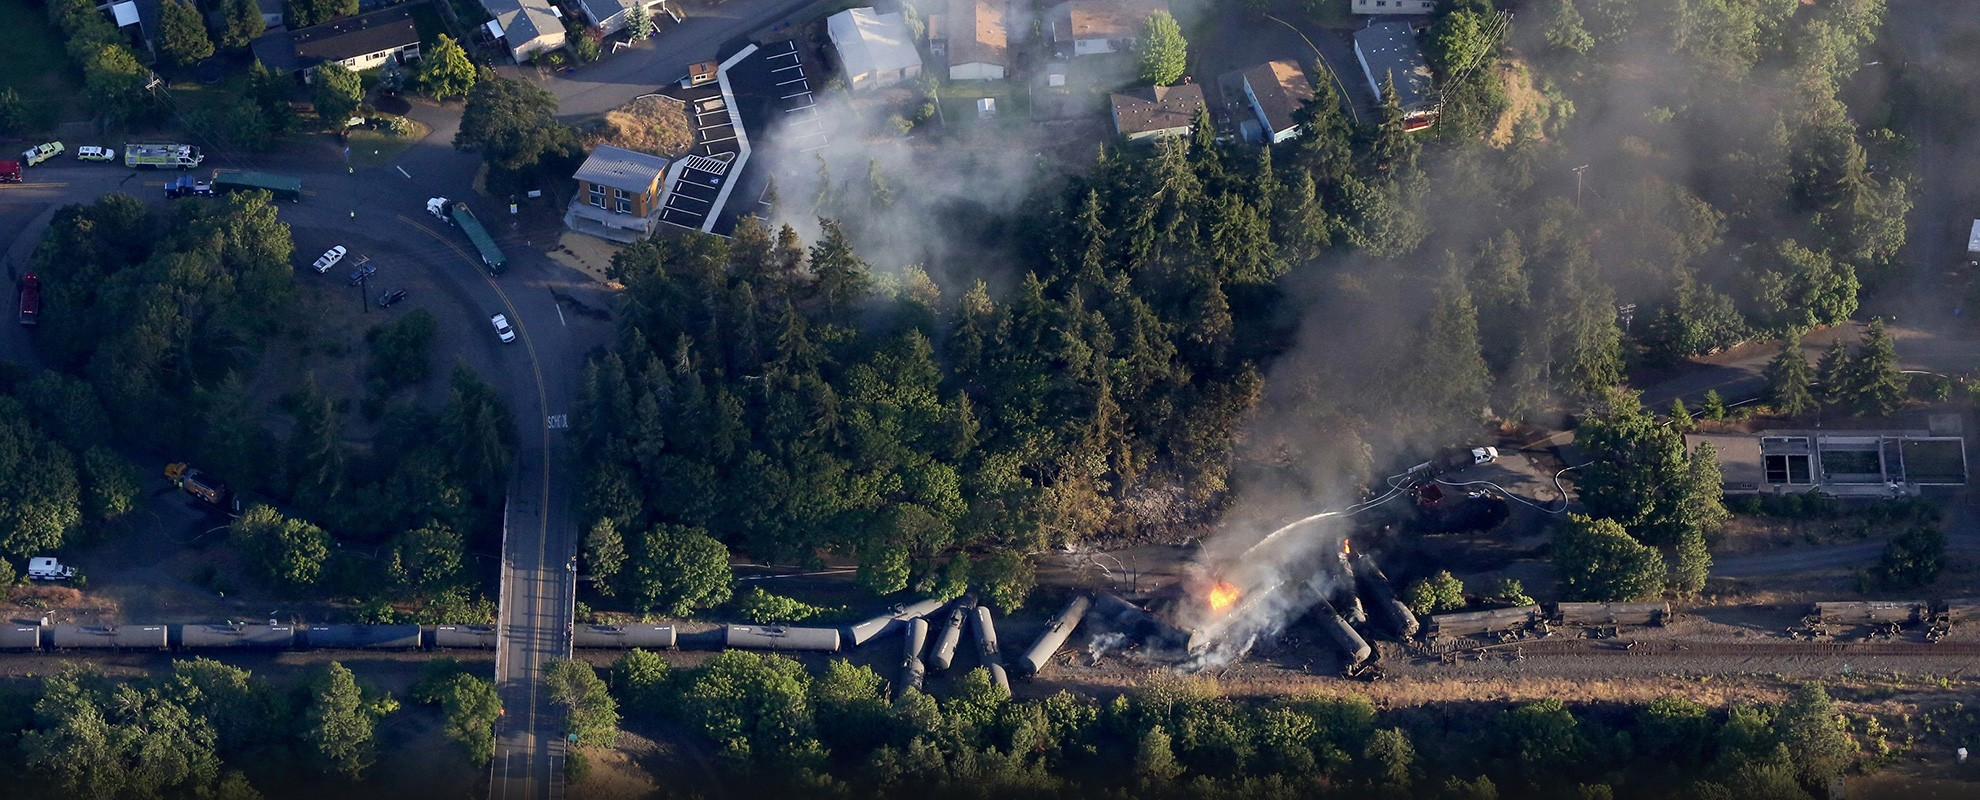 A train carrying crude oil derailed in the town of Mosier, Oregon, in 2016.